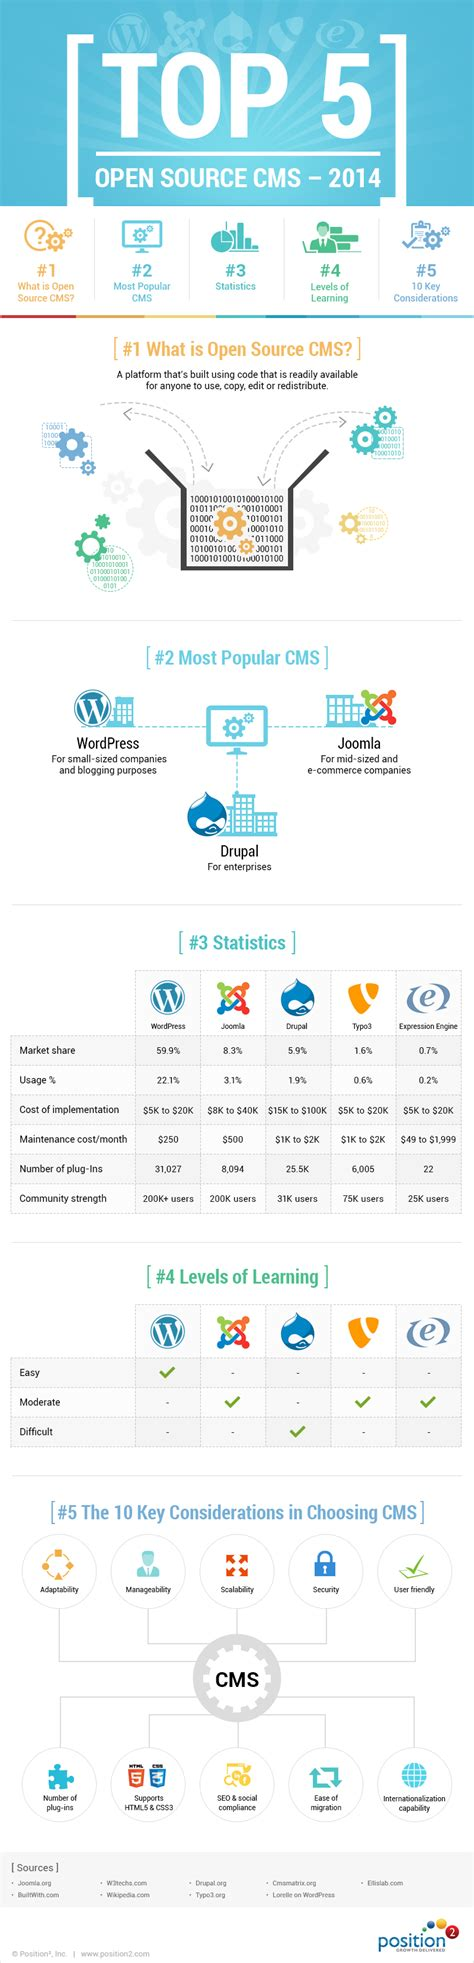 best cms 2014 top 5 open source cms of 2014 infographic